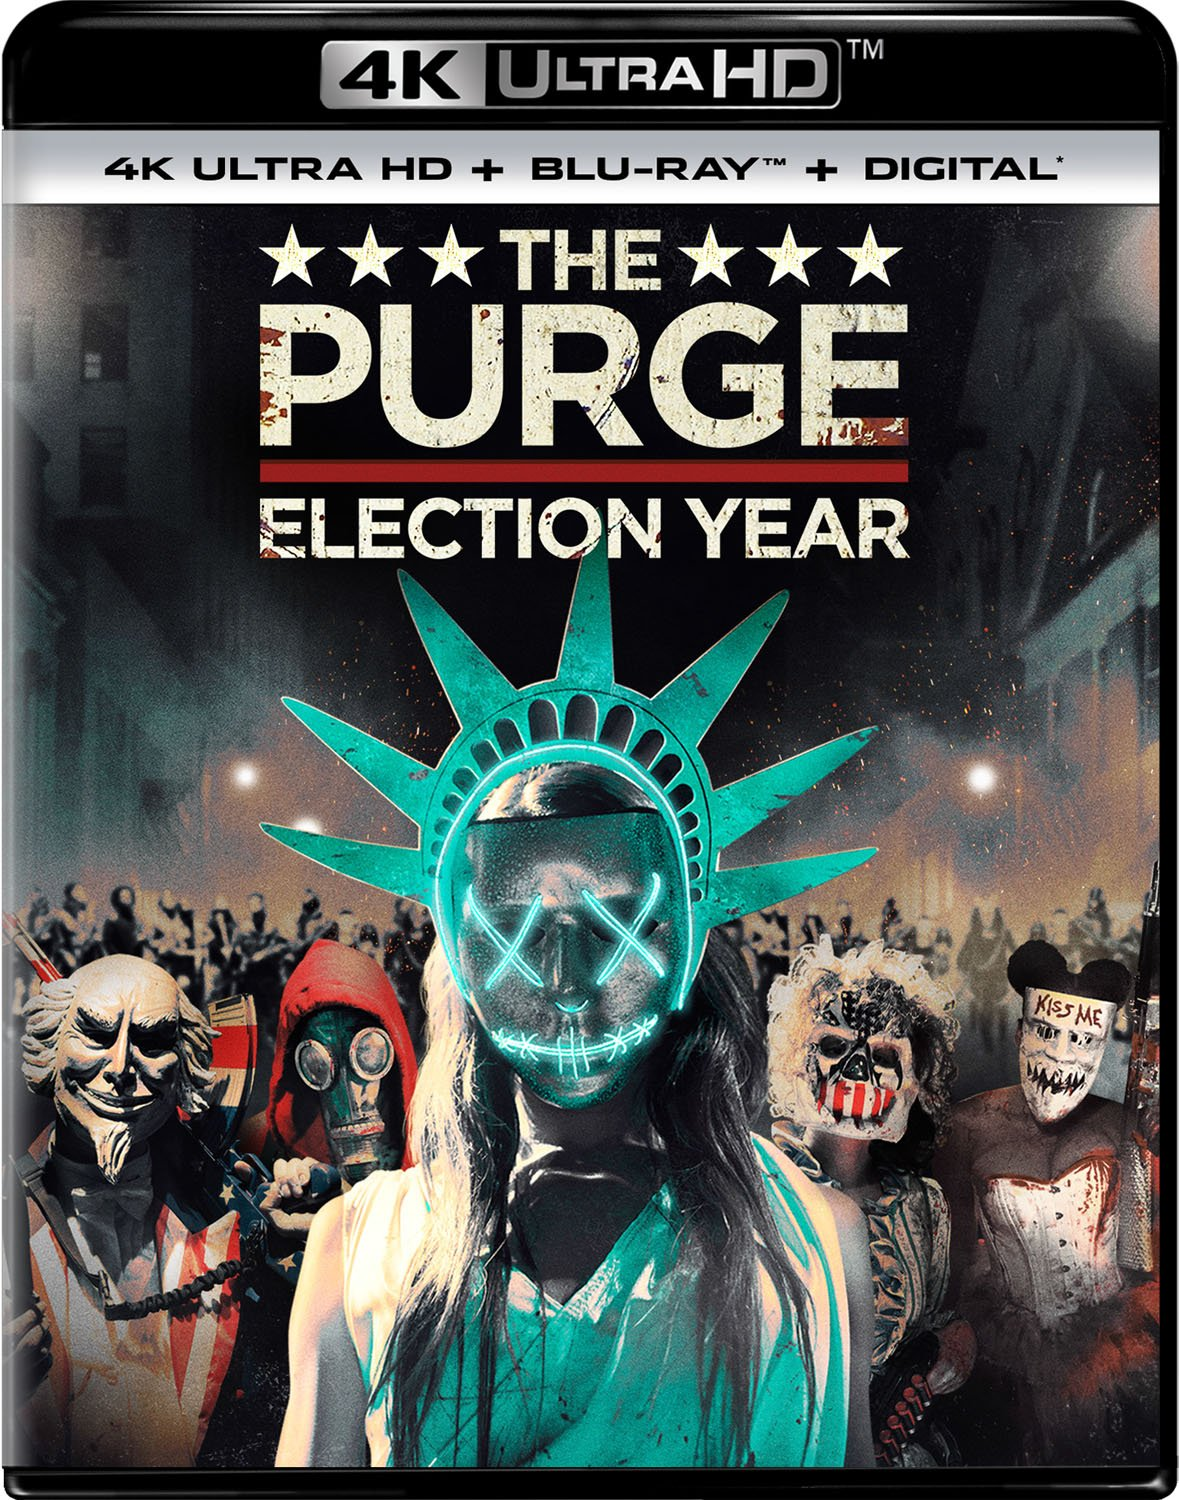 4K Blu-ray : The Purge: Election Year (With Blu-Ray, 4K Mastering, Digital Copy, 2 Pack, 2PC)